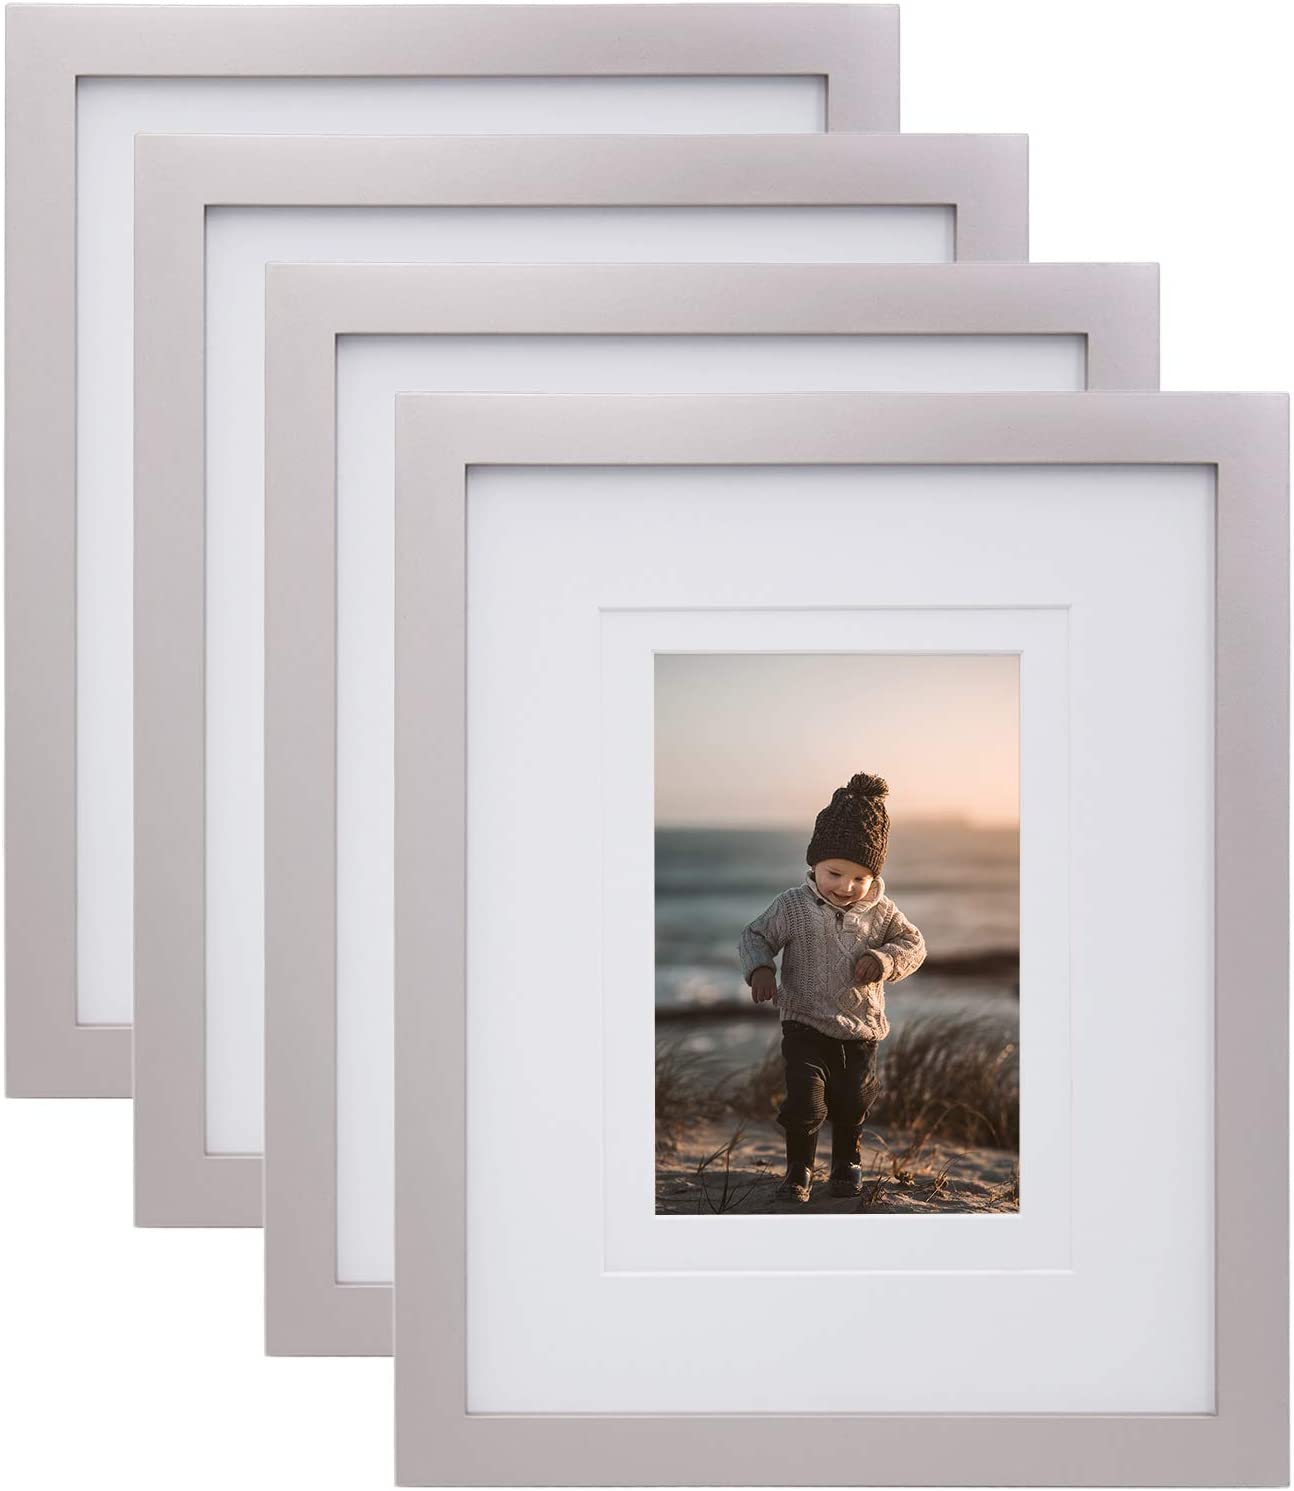 KINLINK 8x10 Picture Frames Silver-Wood Frames with HD Plexiglass for Pictures 4x6/5x7 with Mat or 8x10 without Mat,Tabletop and Wall Mounting Display, Set of 4